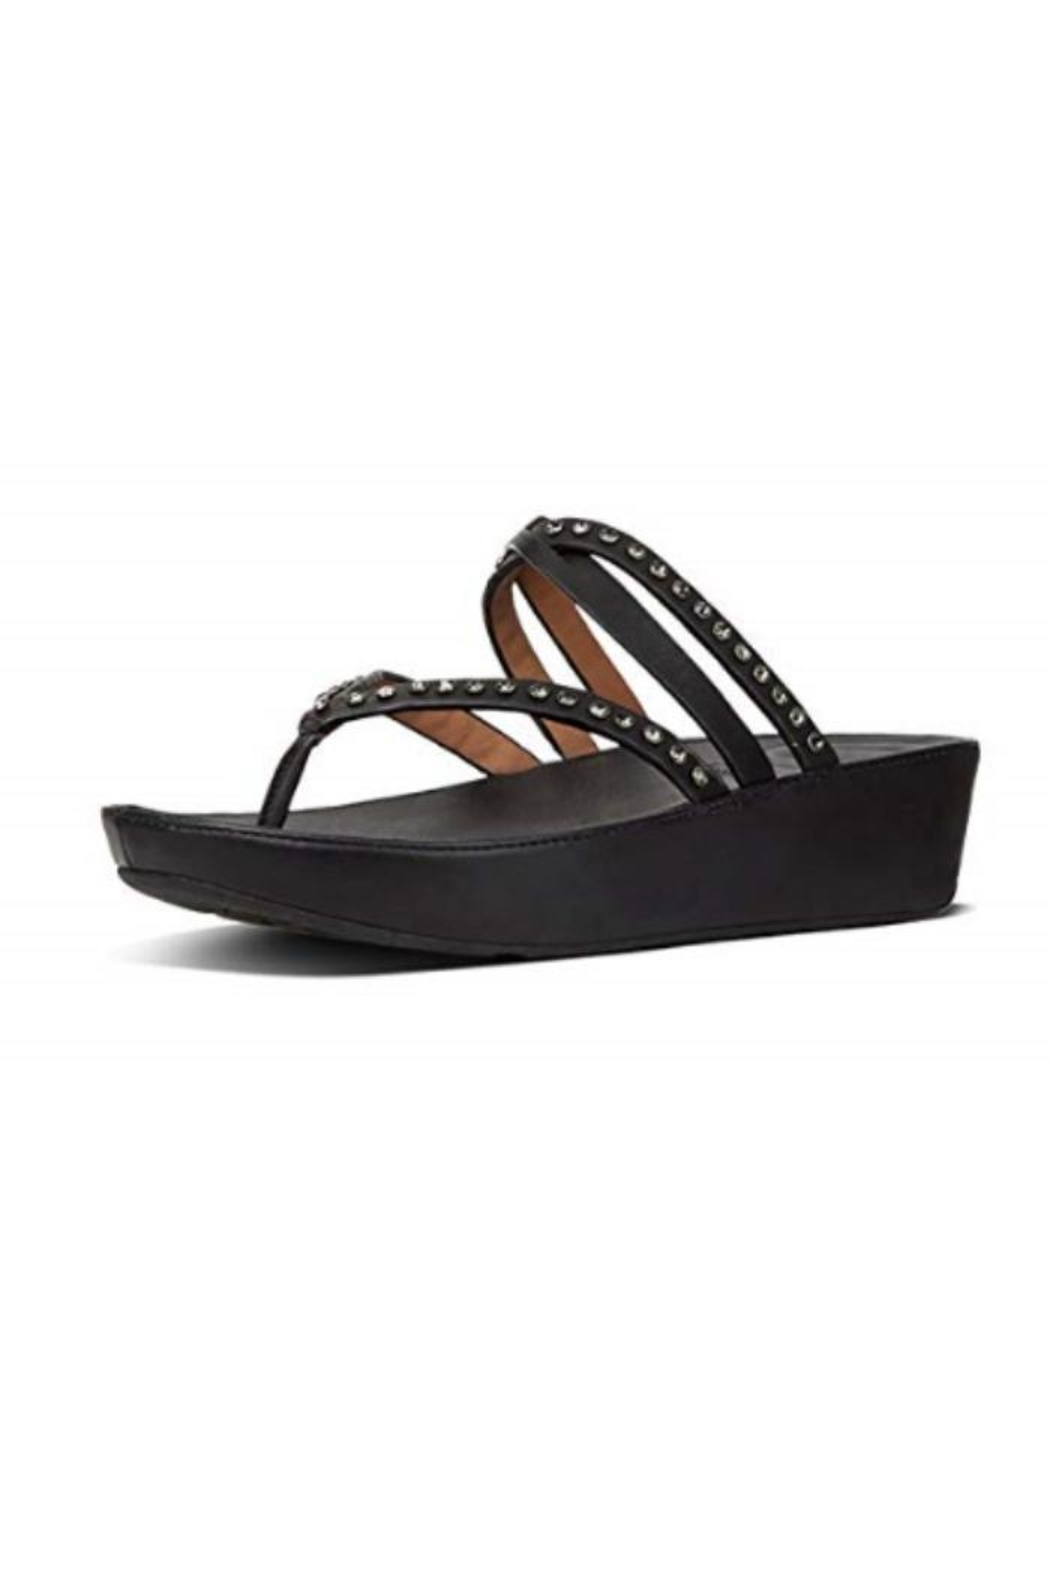 563c3434e5e Fitflop Linny Crystal from Philadelphia by Hot Foot Boutique ...